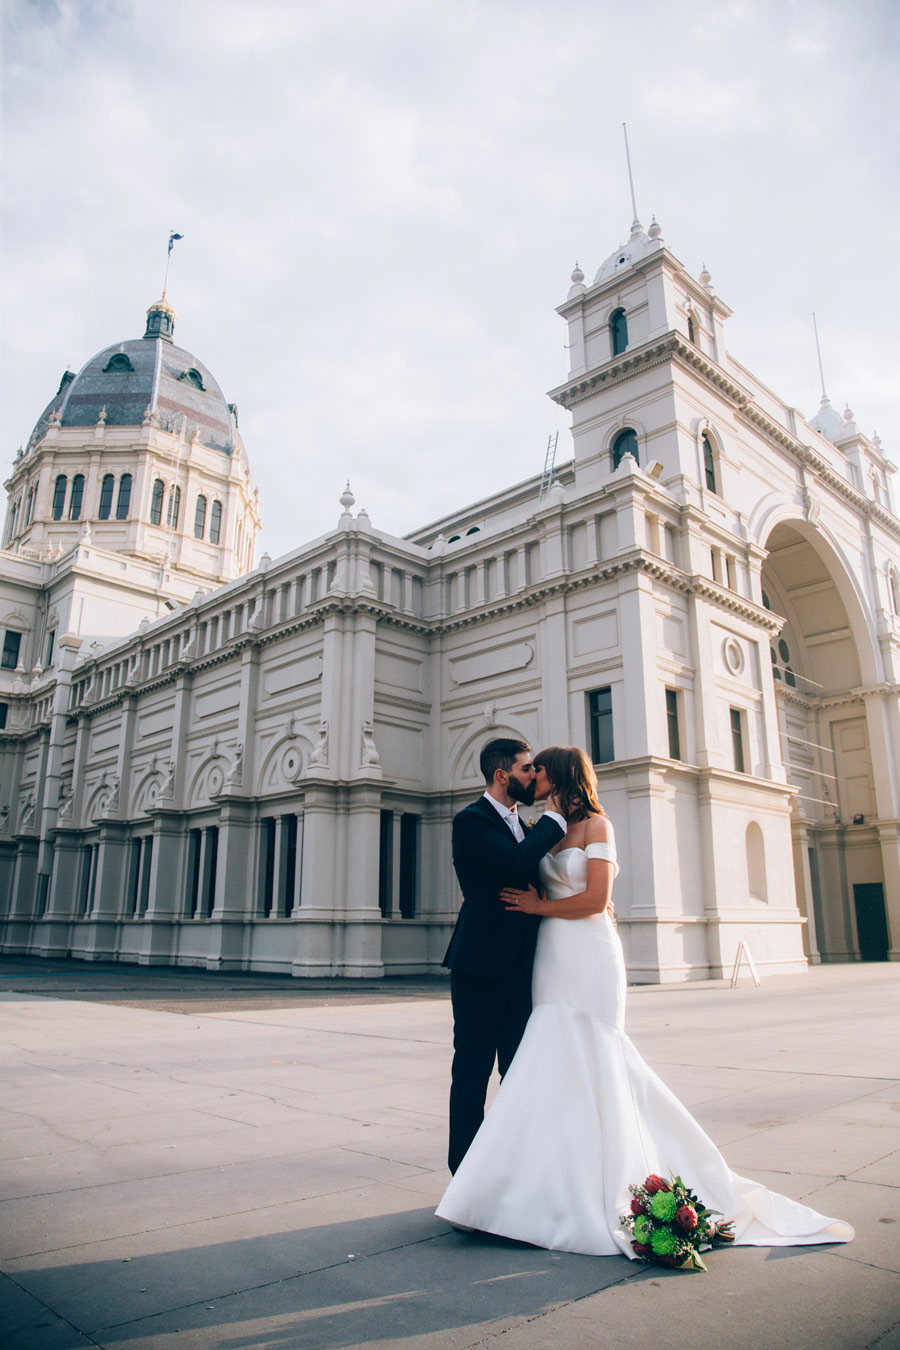 Clare + Ric RAFFAELE CIUCA - RC Real Bride Delco by Pronovias